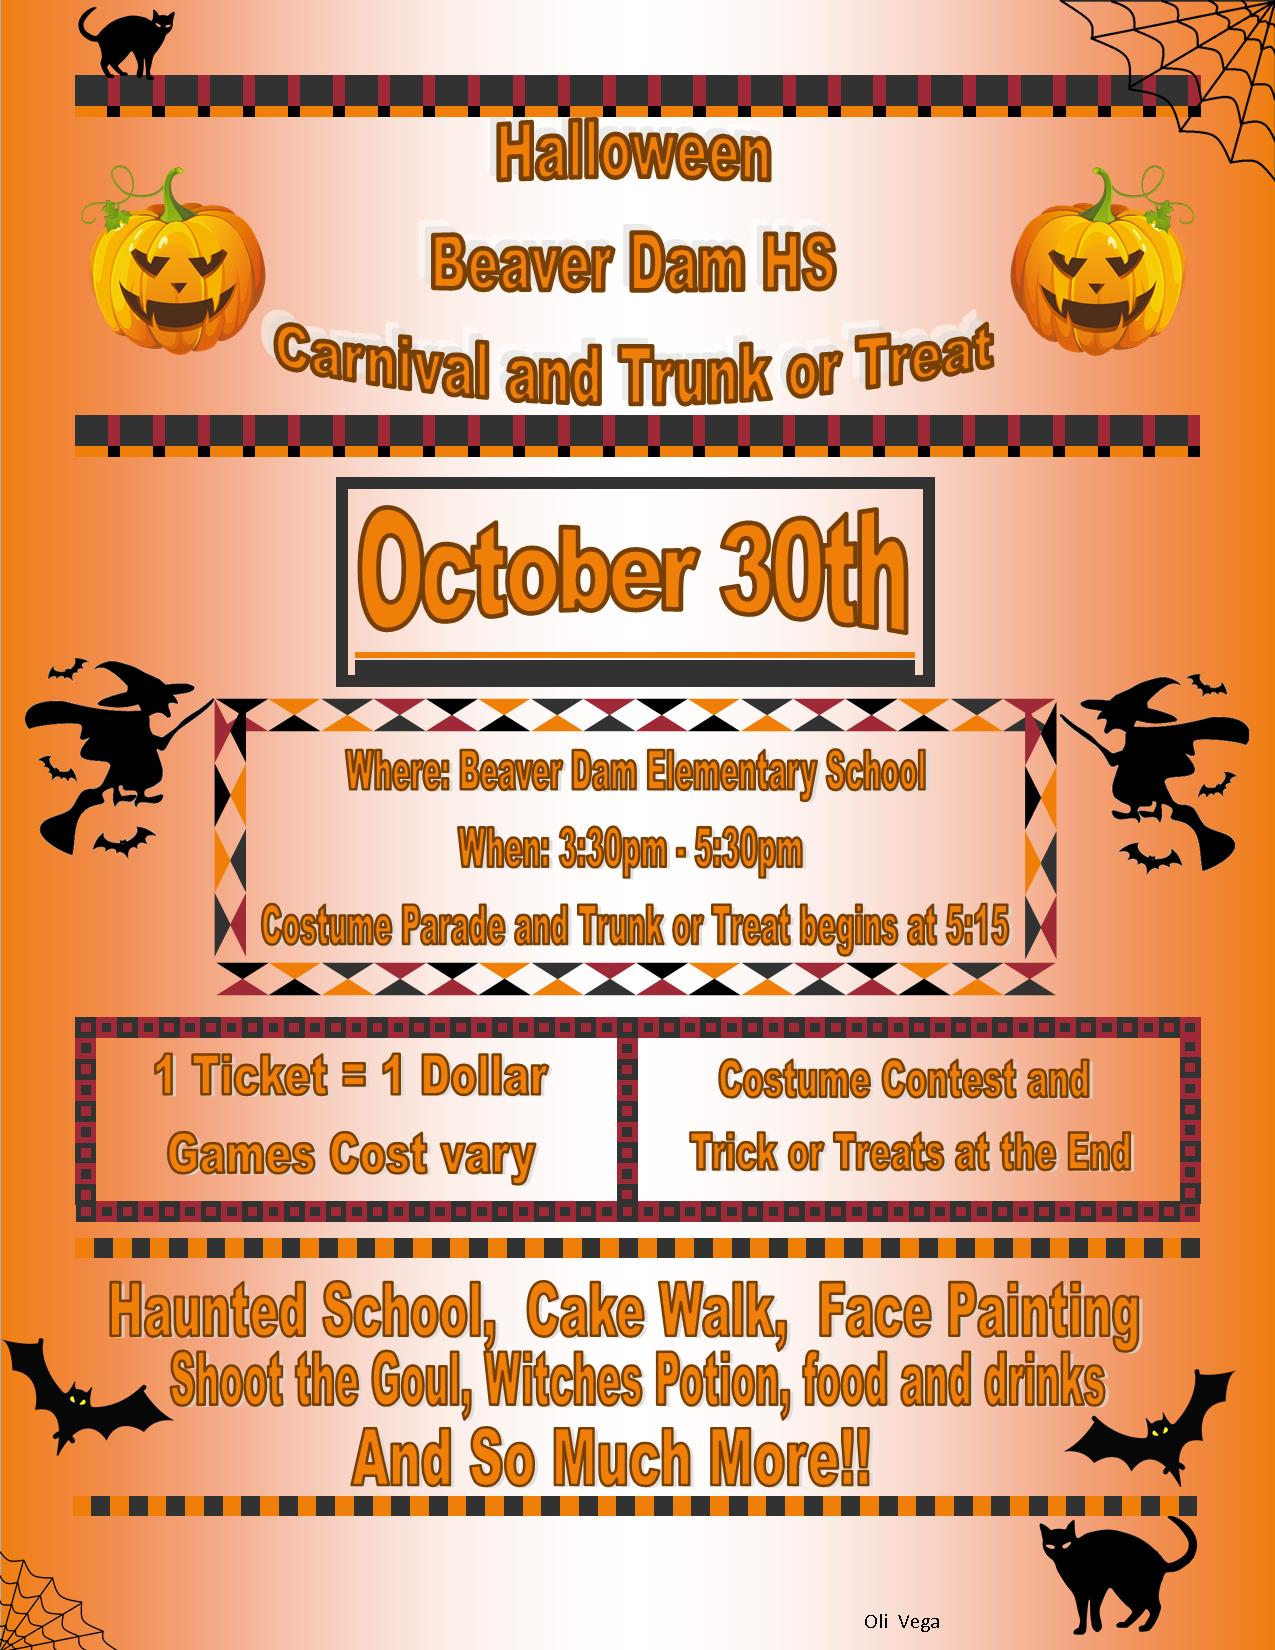 Beaver Dam Second Annual Halloween Carnival